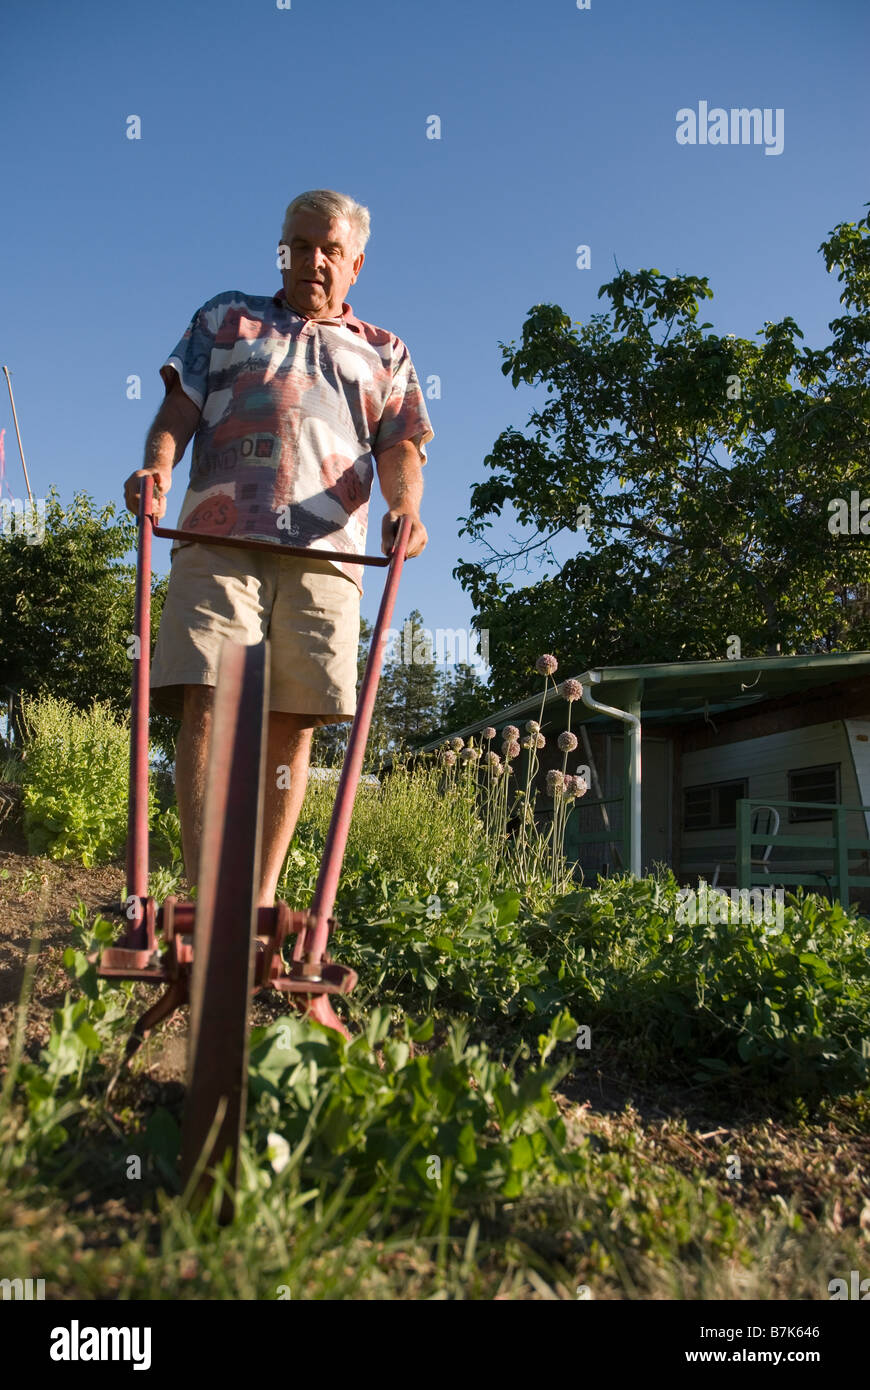 Senior using mechanical weeder, Okanagan Centre, BC Canada - Stock Image